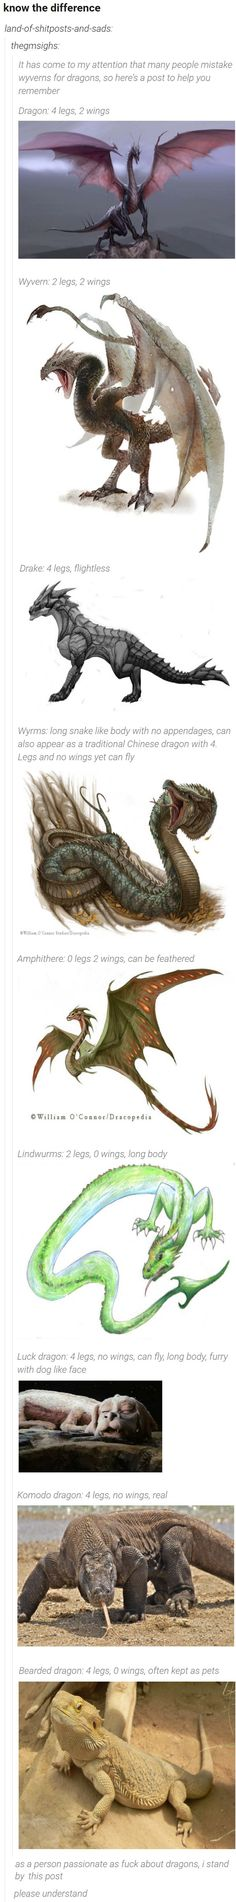 Dragon: 4 legs, 2 wings.Wyvern: 2 legs, 2 wings.Drake: 4 legs, flightless.Wyrms: long snake like body with no appendages, can also appear as a traditional Chinese dragon with 4. Legs and no wings yet can fly.Amphithere: 0 legs 2 wings, can be feathered.Lindwurms: 2 legs, 0 wings, long body.Luck dragon: 4 legs, no wings, can fly, long body, furry with dog like face.Komodo dragon: 4 legs, no wings, real.Bearded dragon: 4 legs, 0 wings, often kept as pets